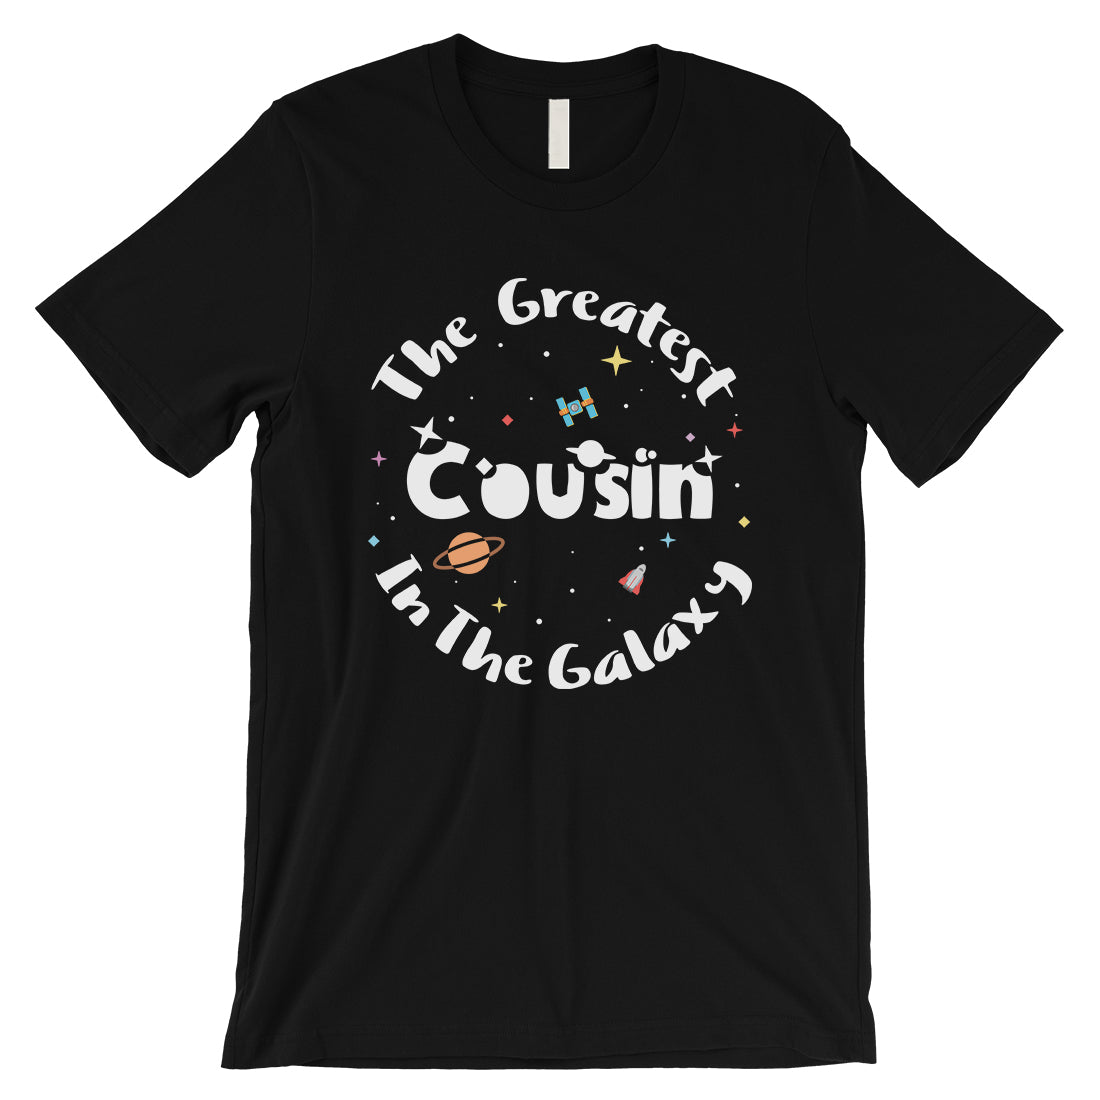 df7088303 The Greatest Cousin Mens Funny Graphic T-Shirt Cute Gift For Cousin ...